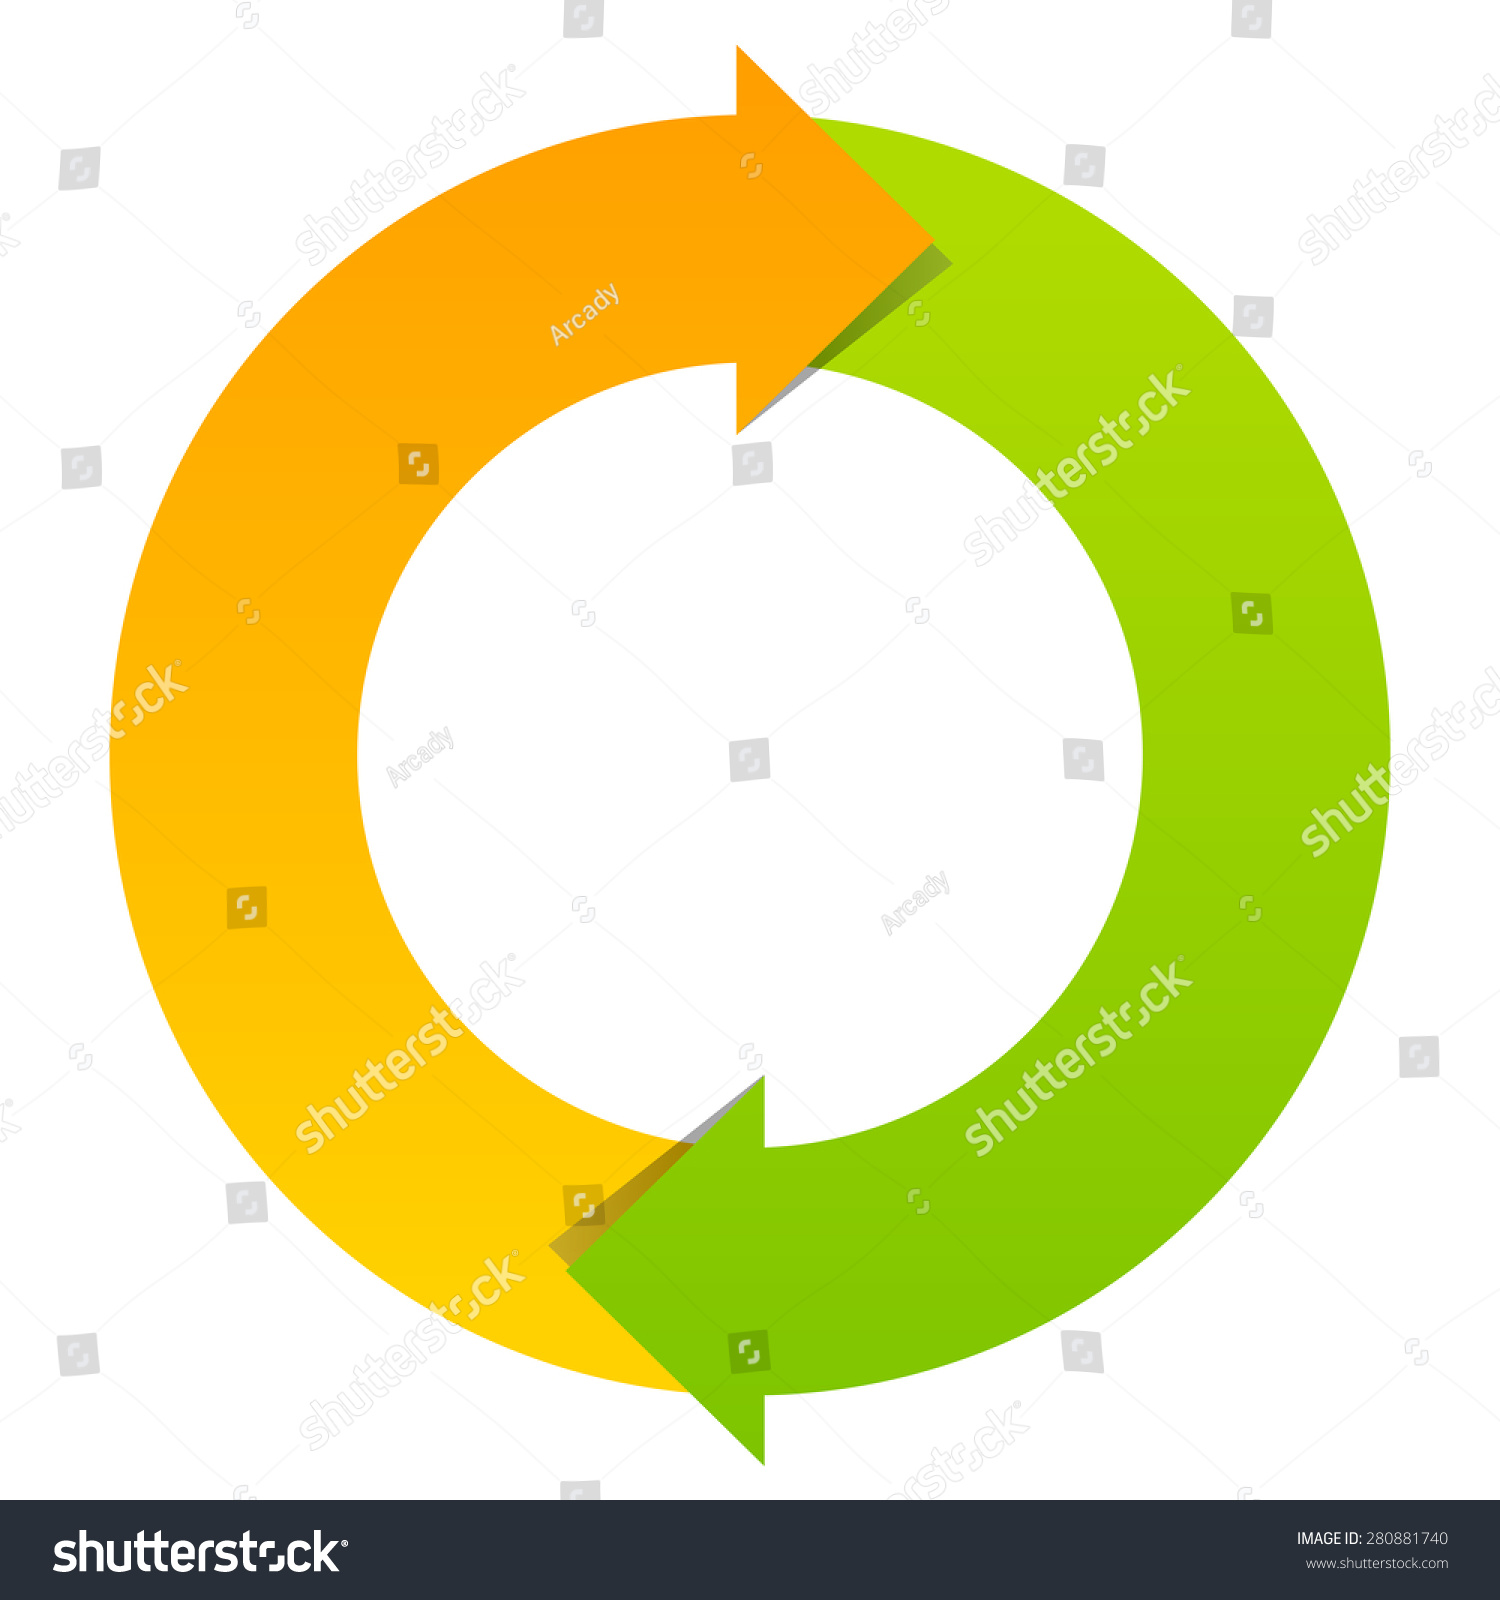 Two Part Cycle Diagram Stock Vector Illustration 280881740